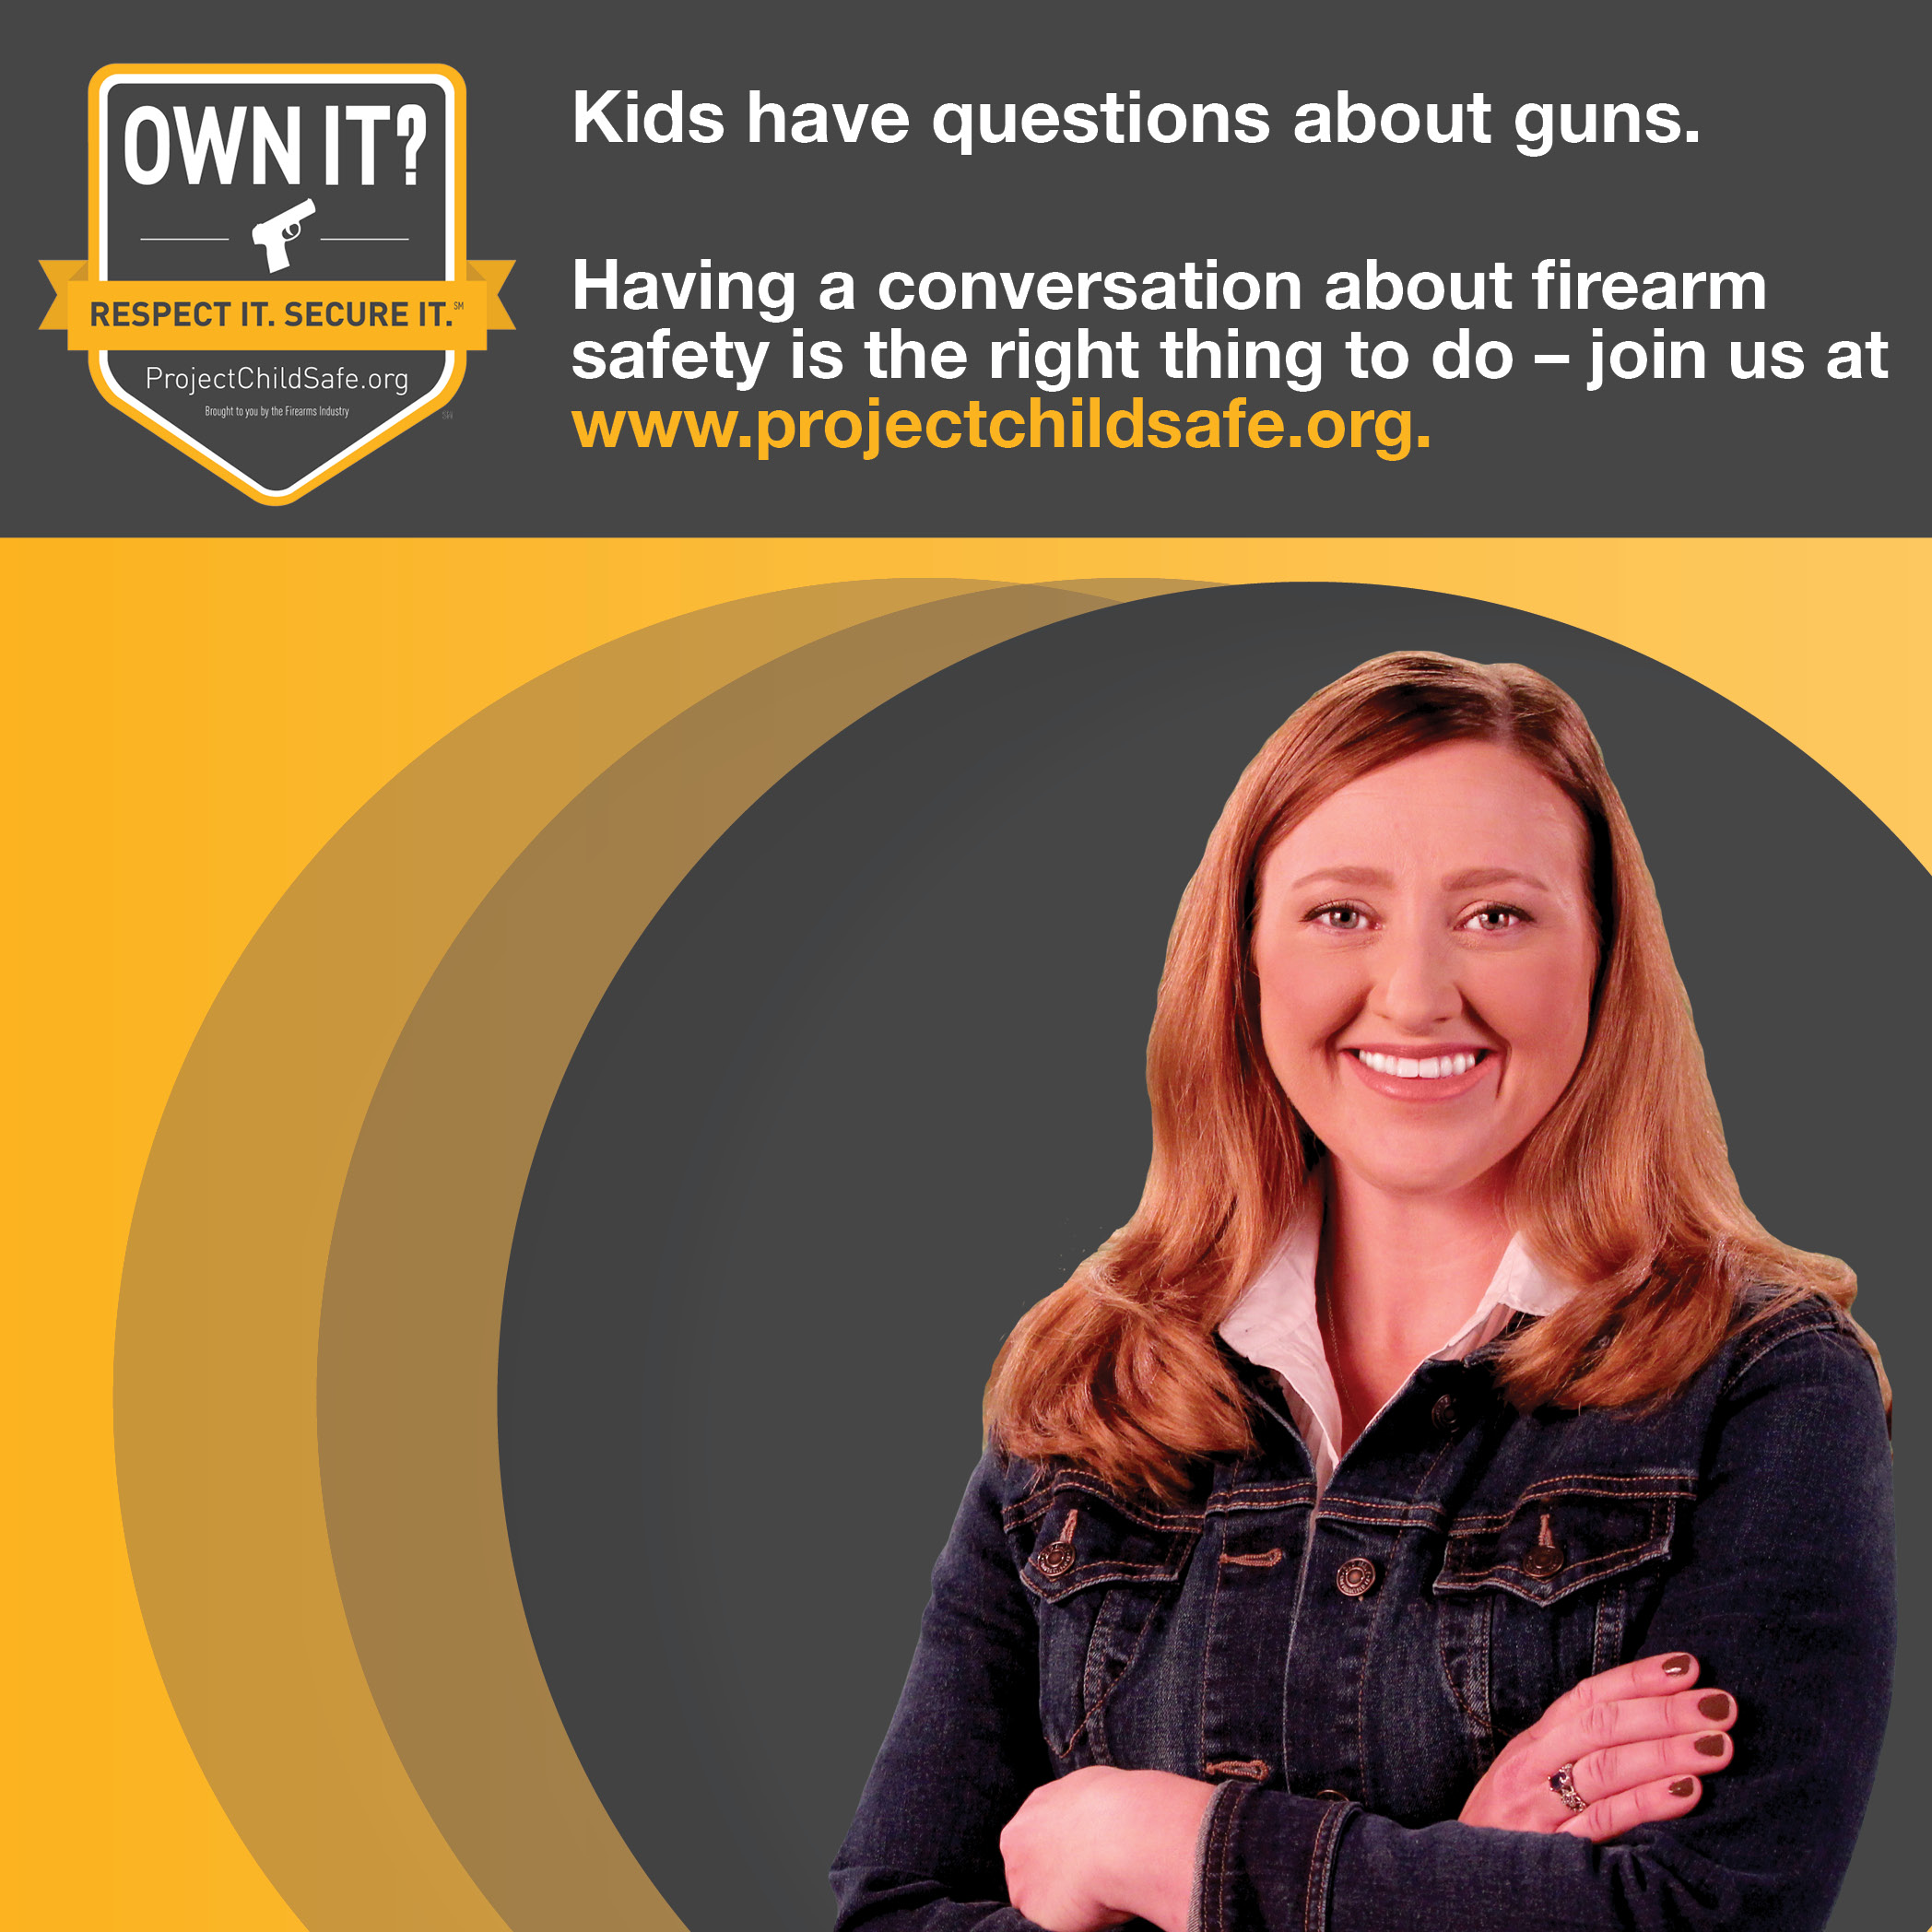 Share REAL #GunSafety and WIN with Project Childsafe